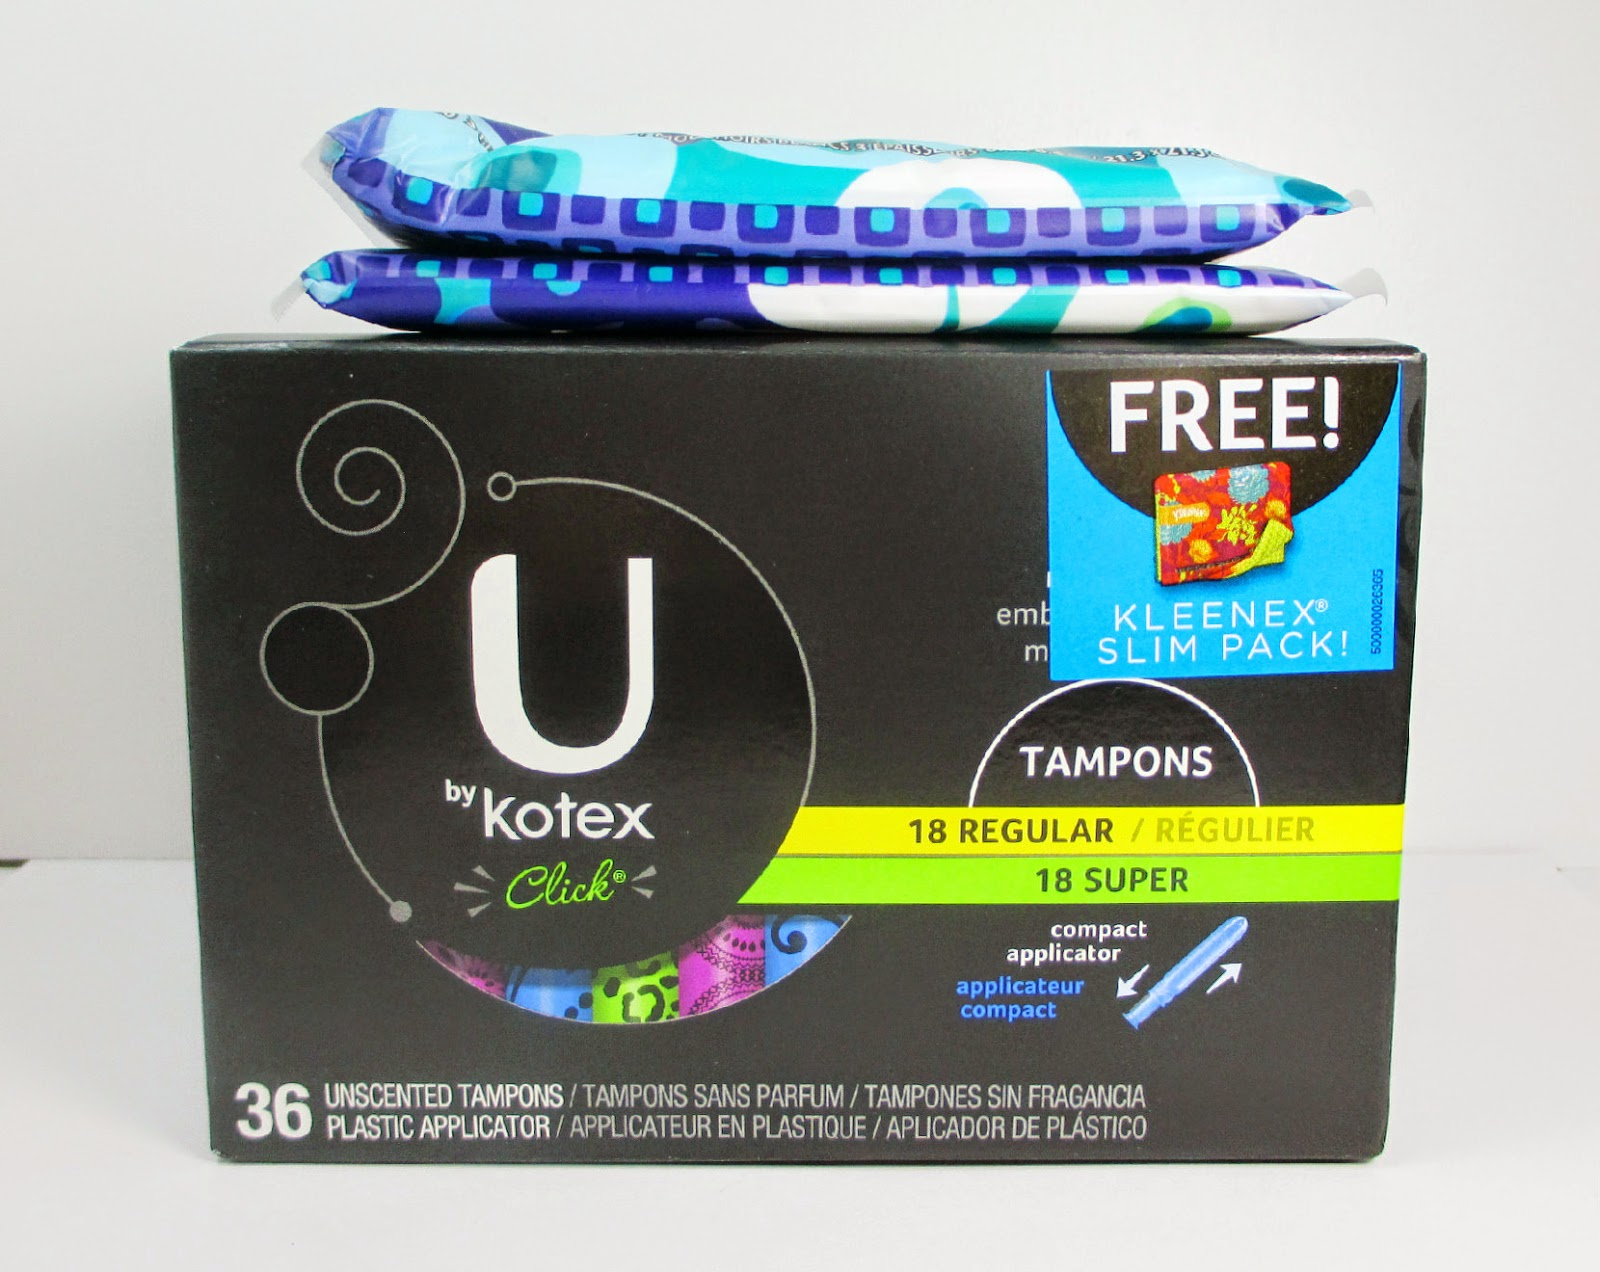 Like Kotex coupons? Try these...